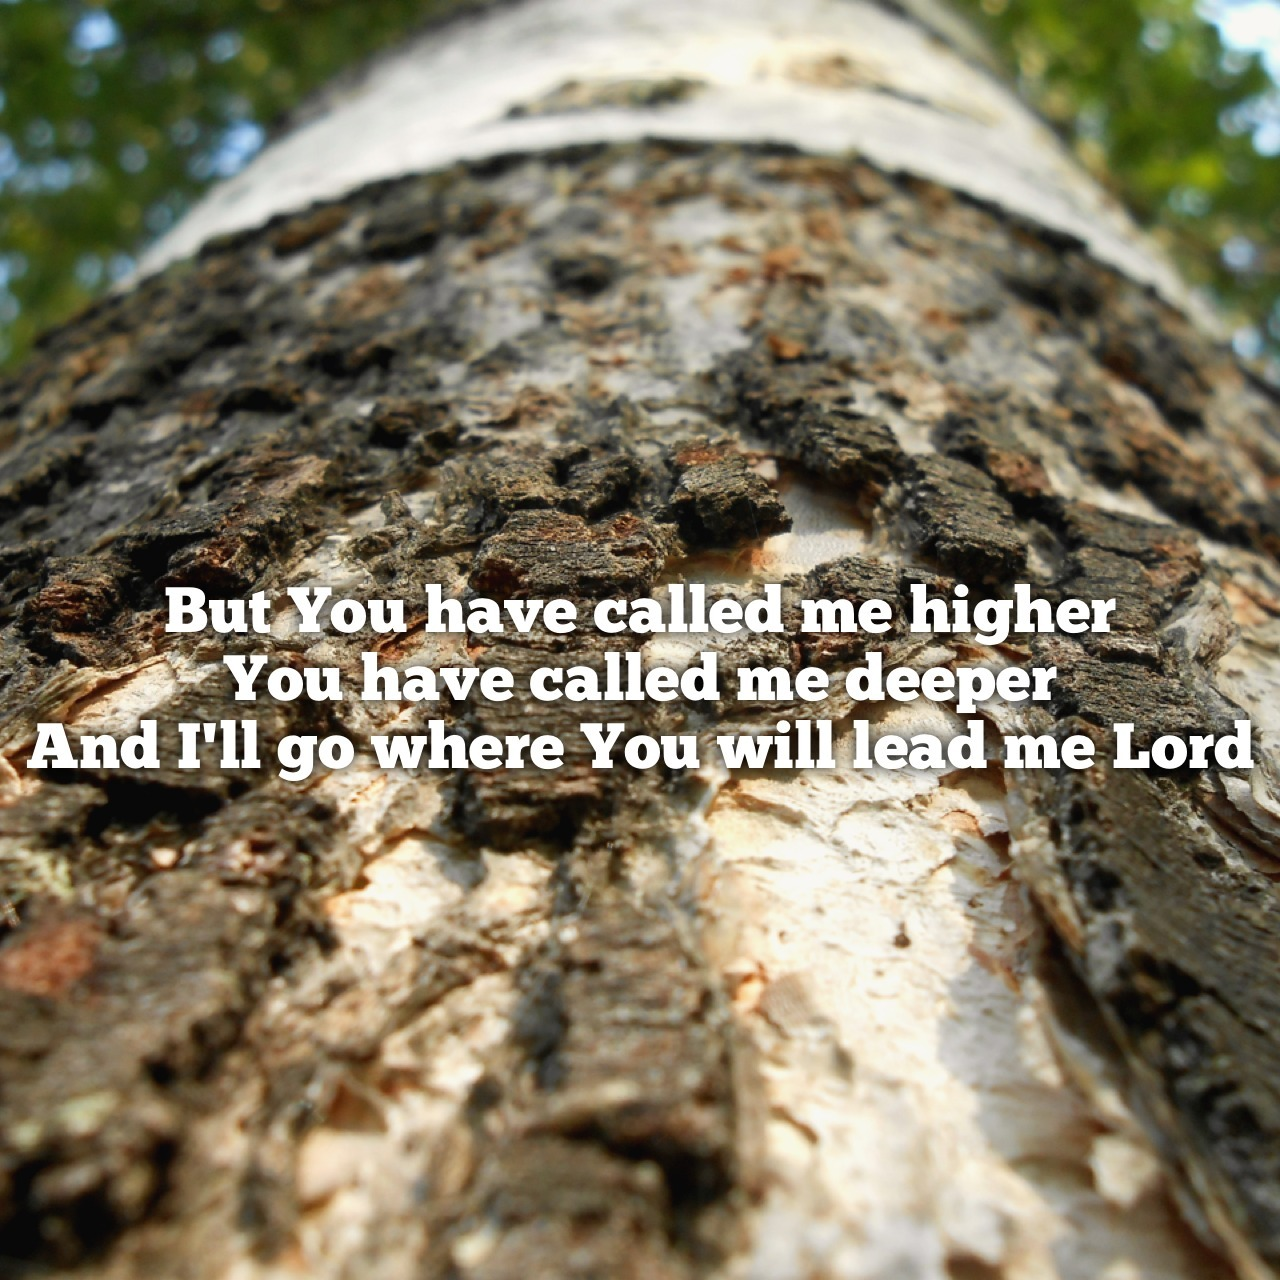 """If you have not heard """"Called Me Higher"""" by All Sons & Daughters, I recommend that you do. It's a very beautiful worship song that makes me smile every time!"""